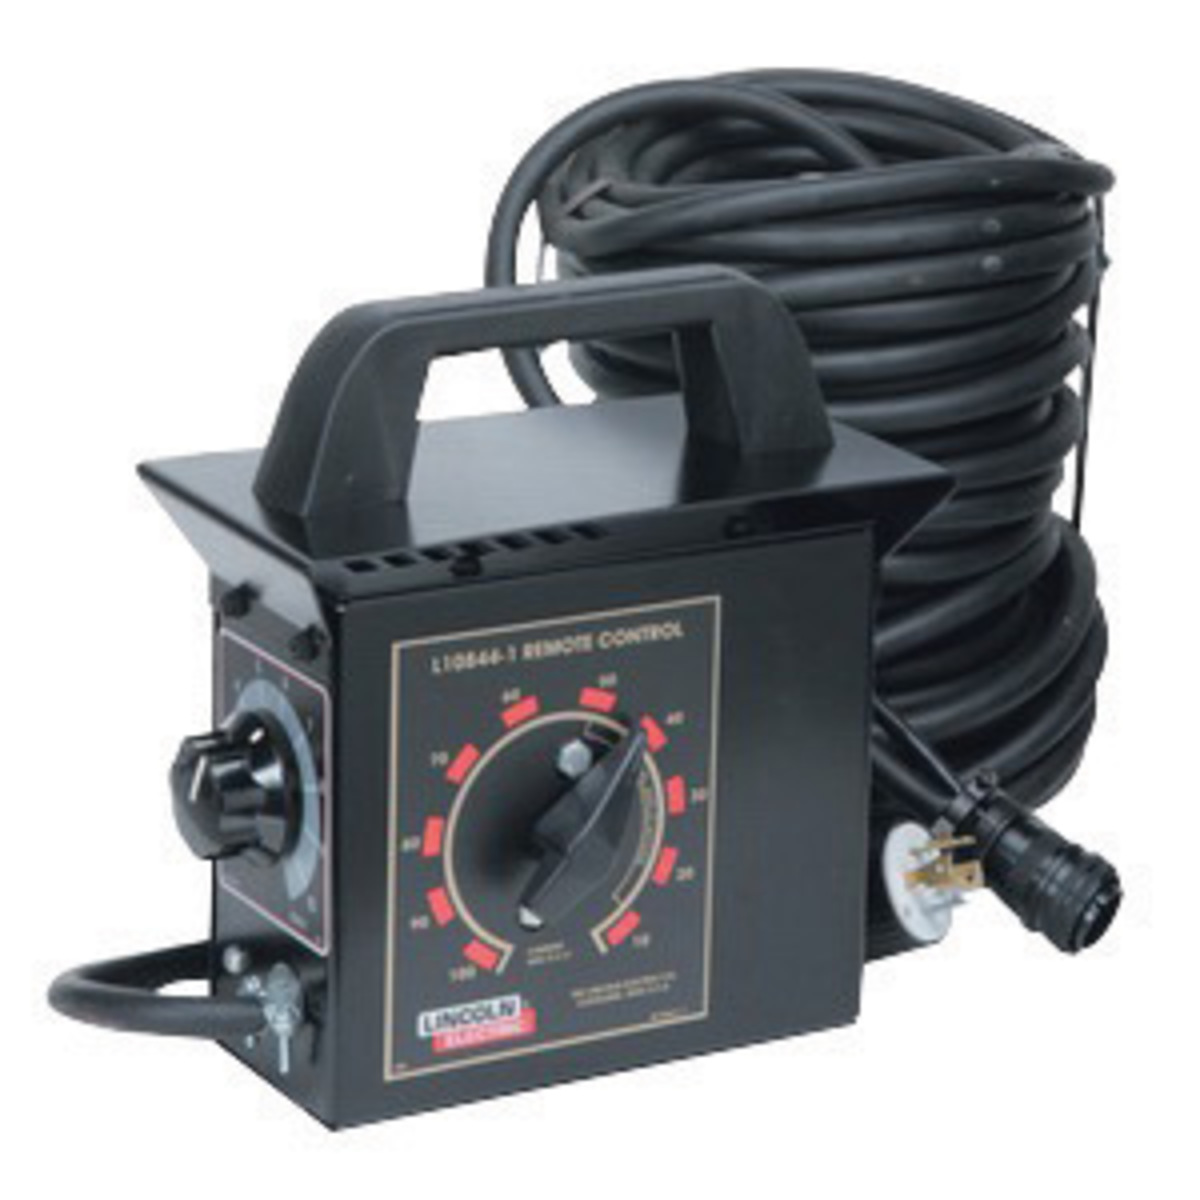 Airgas - Link2464-1